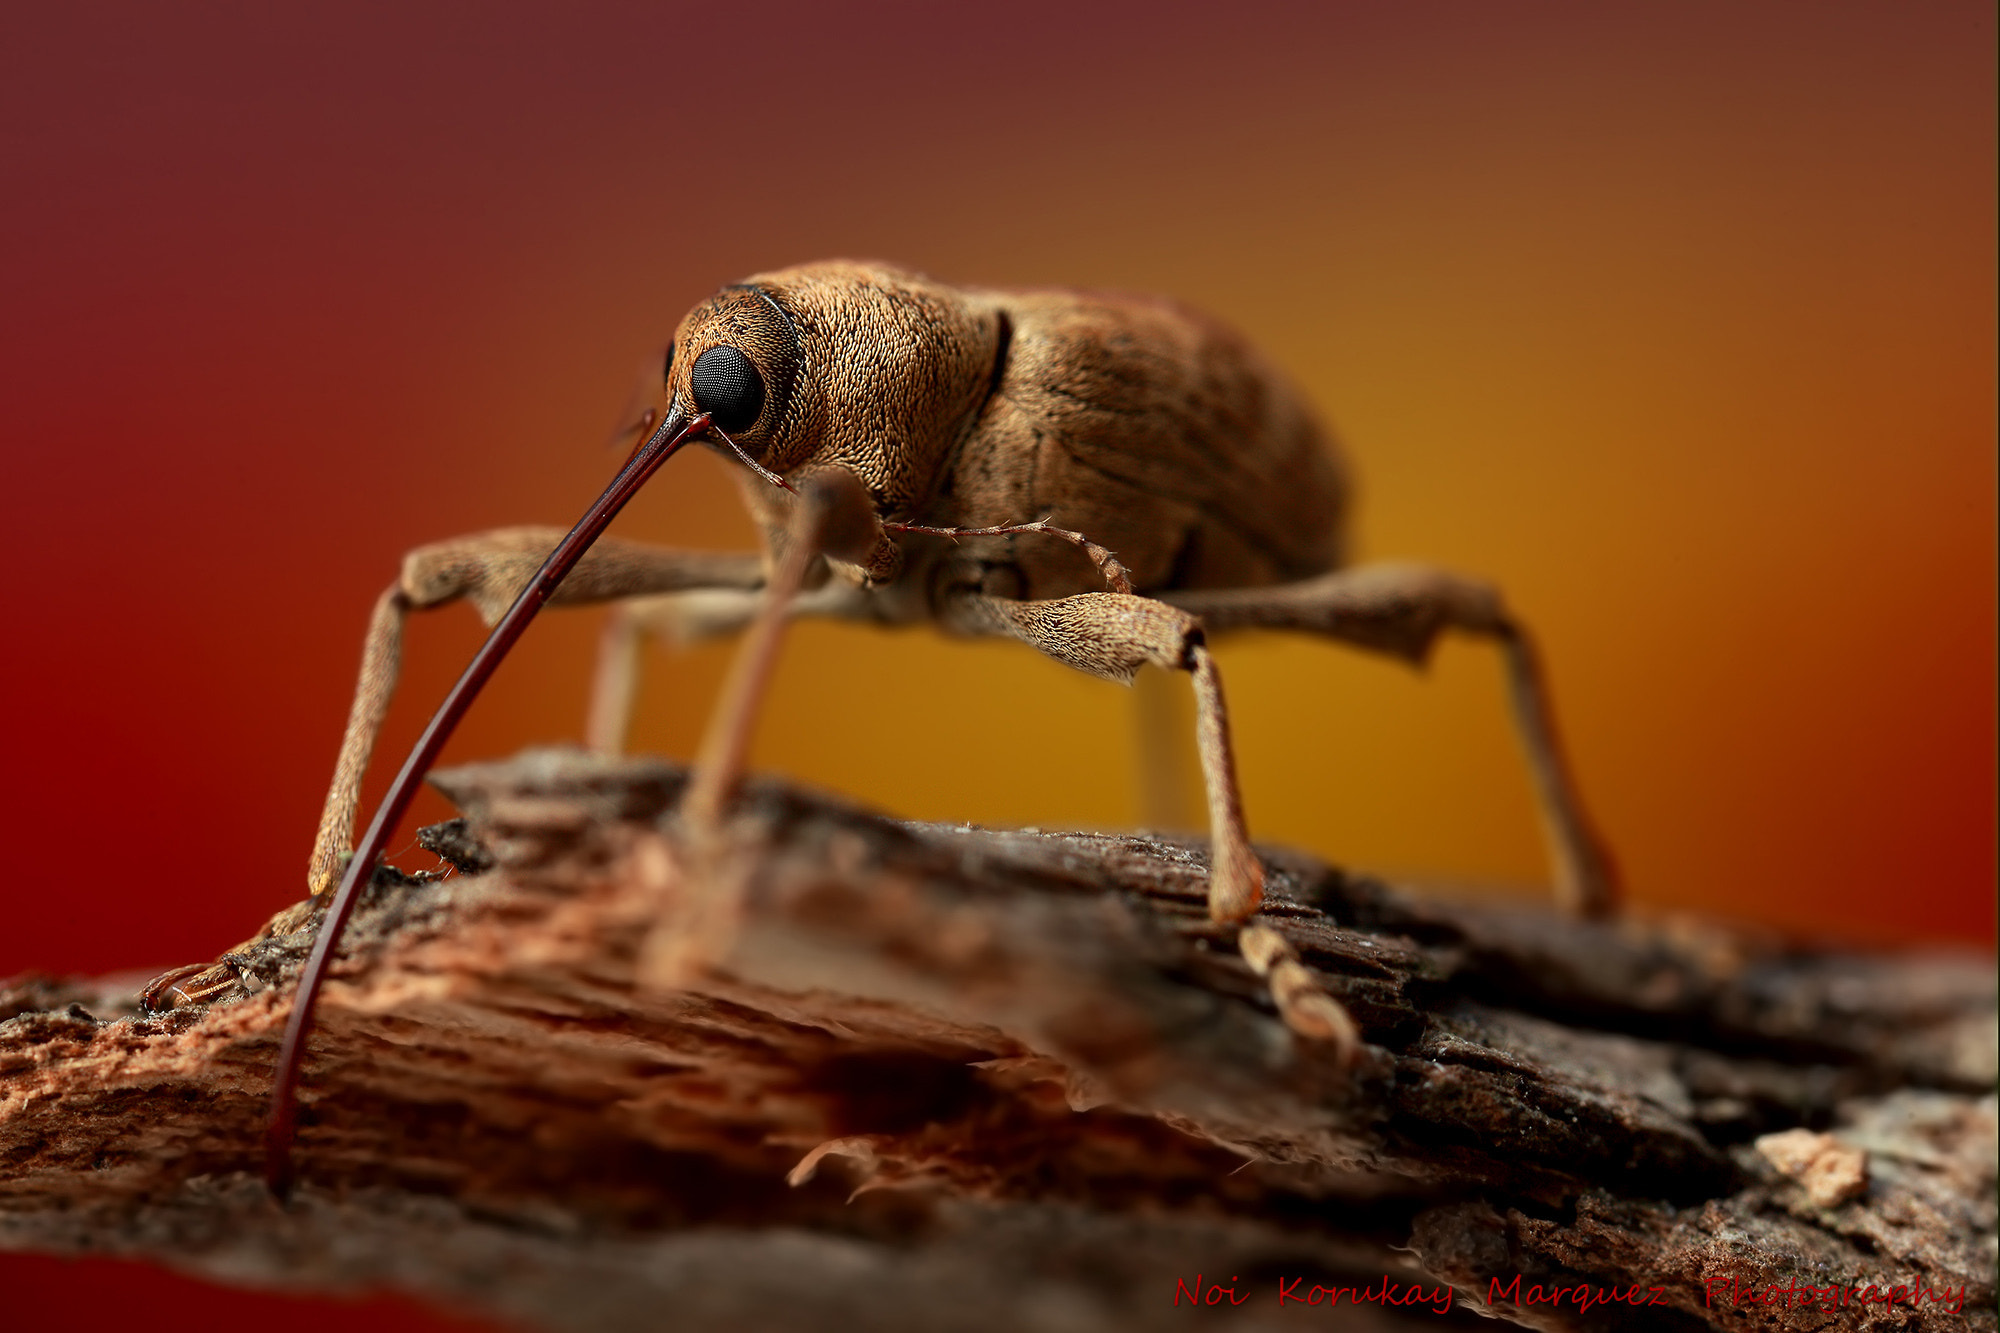 Photograph WeeVil by Noi korukay Marquez on 500px